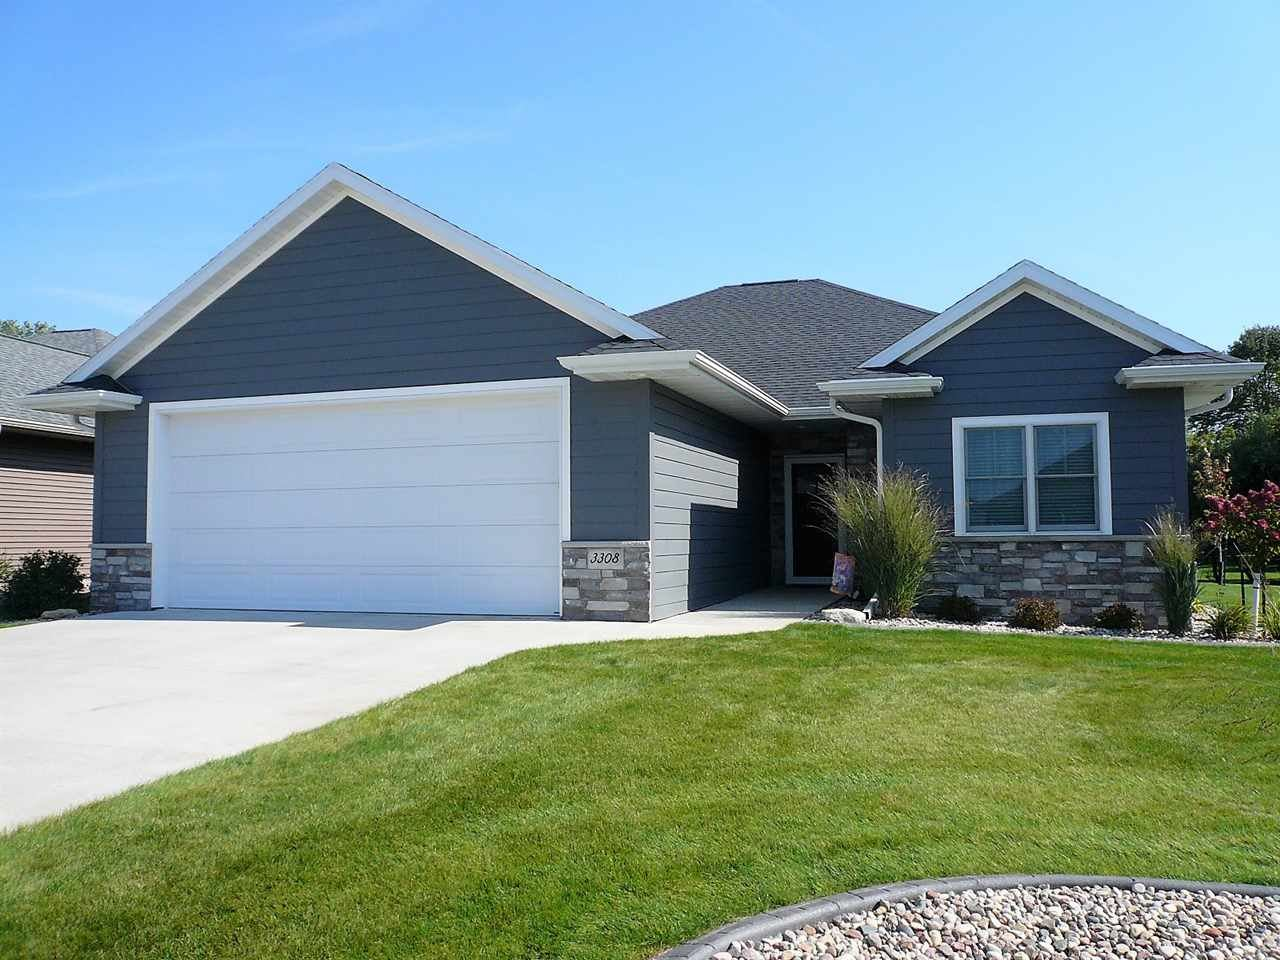 3308 STONE RIDGE Drive #26, Green Bay, WI 54313 - MLS#: 50230022